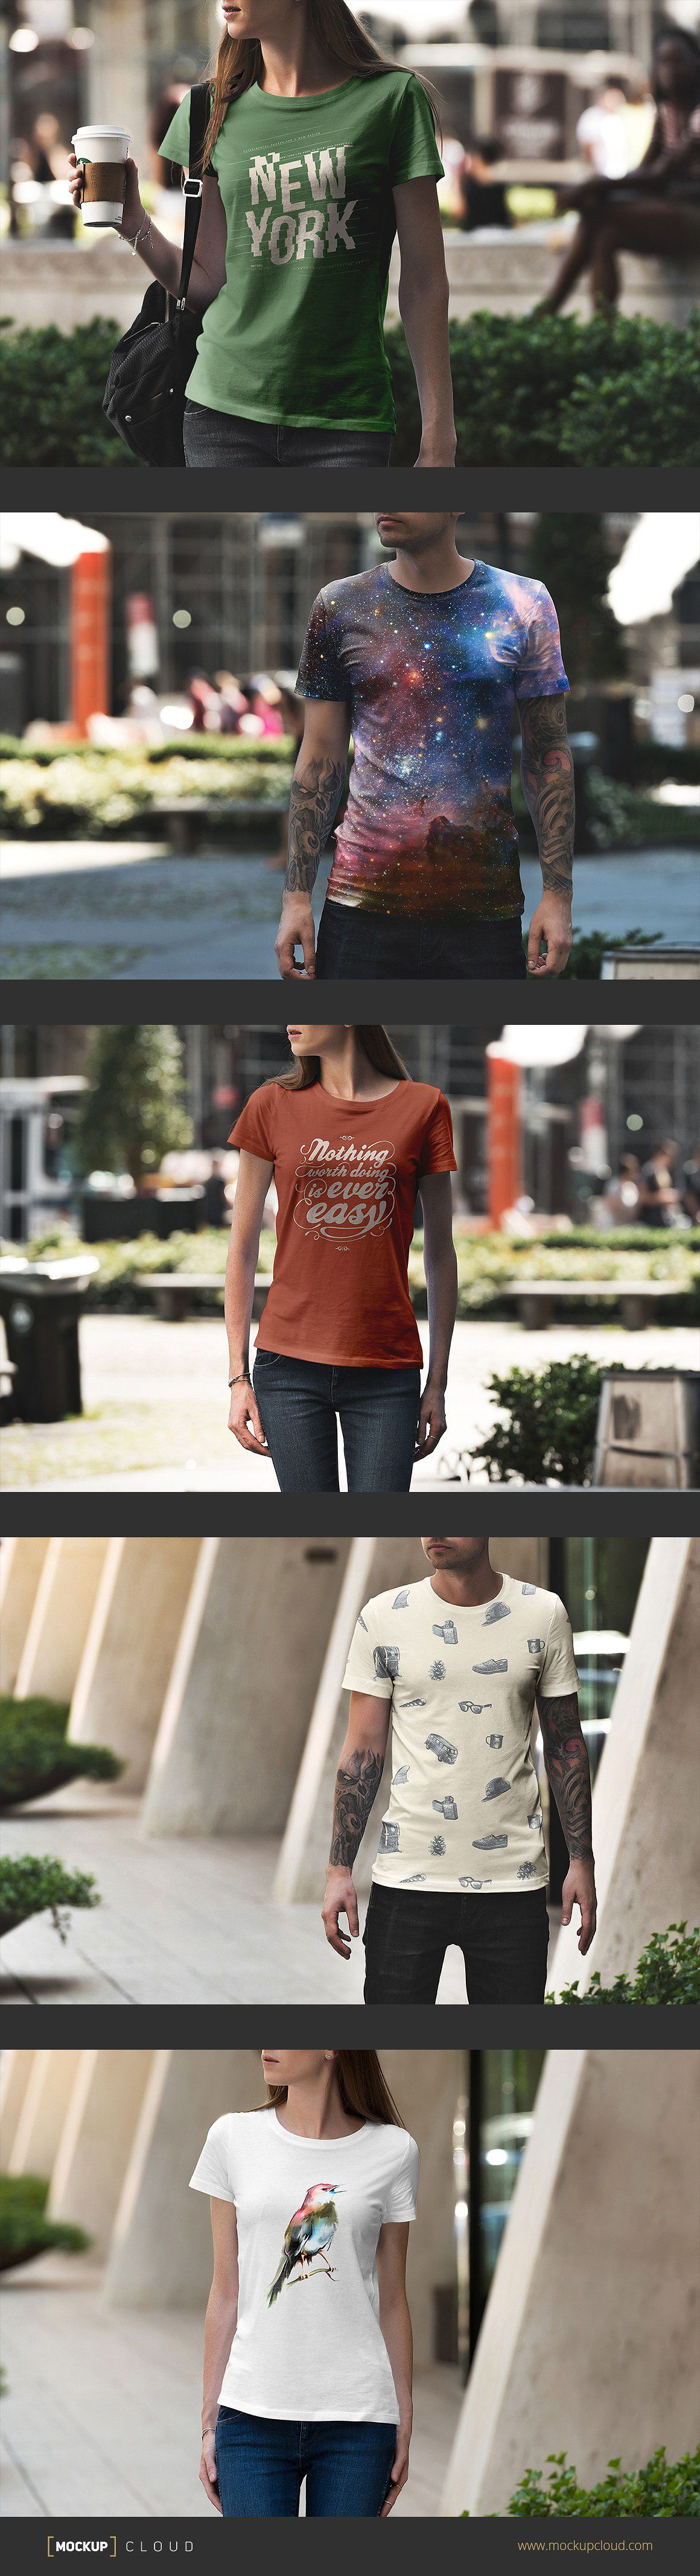 Download Check Out My Behance Project T Shirt Mockup Https Www Behance Net Gallery 62423391 T Shirt Mockup Shirt Mockup Tshirt Mockup Tshirt Designs